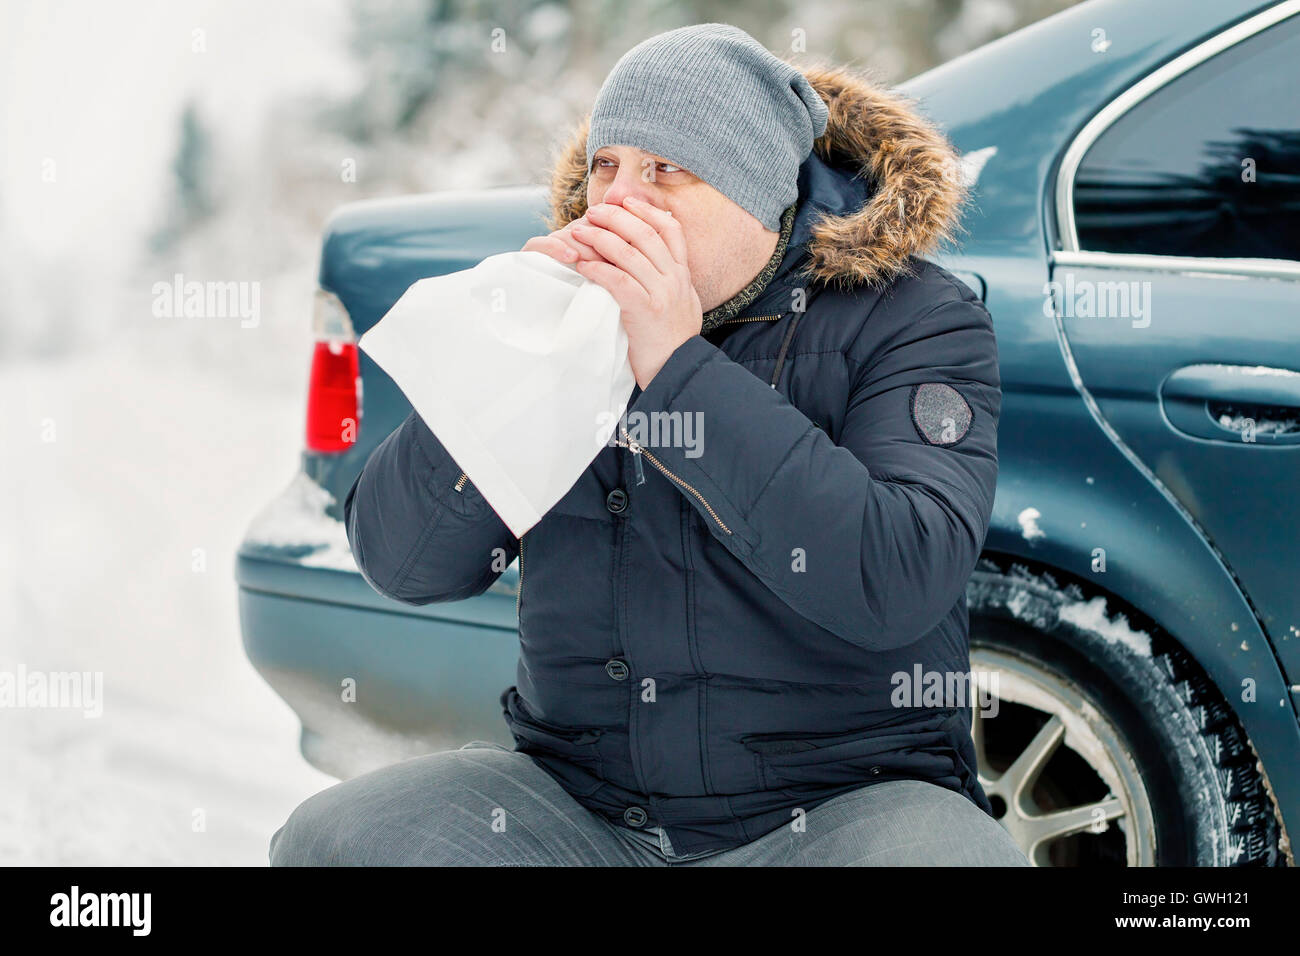 Stressful man breathe into paper bag near car on road - Stock Image